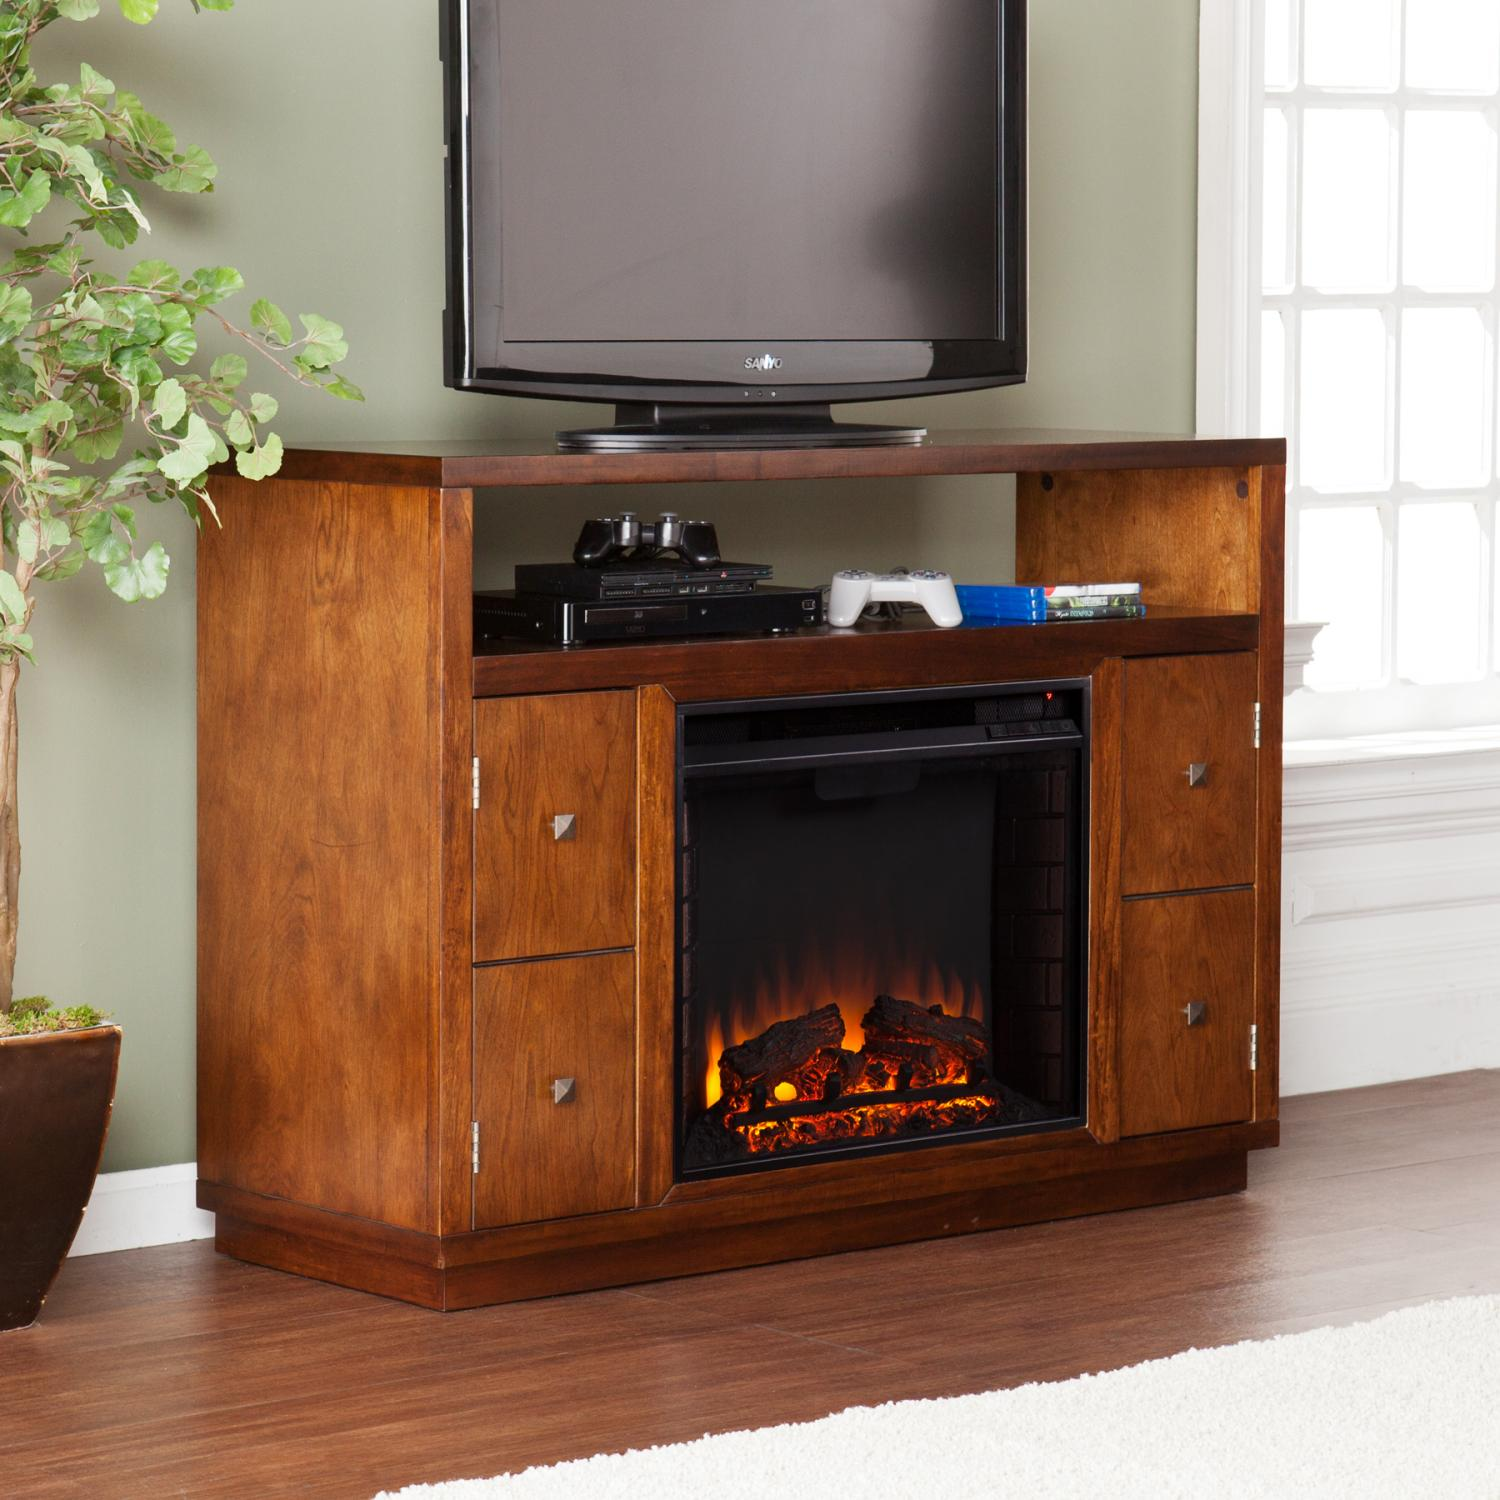 fireplace cleaning products home decorating interior design